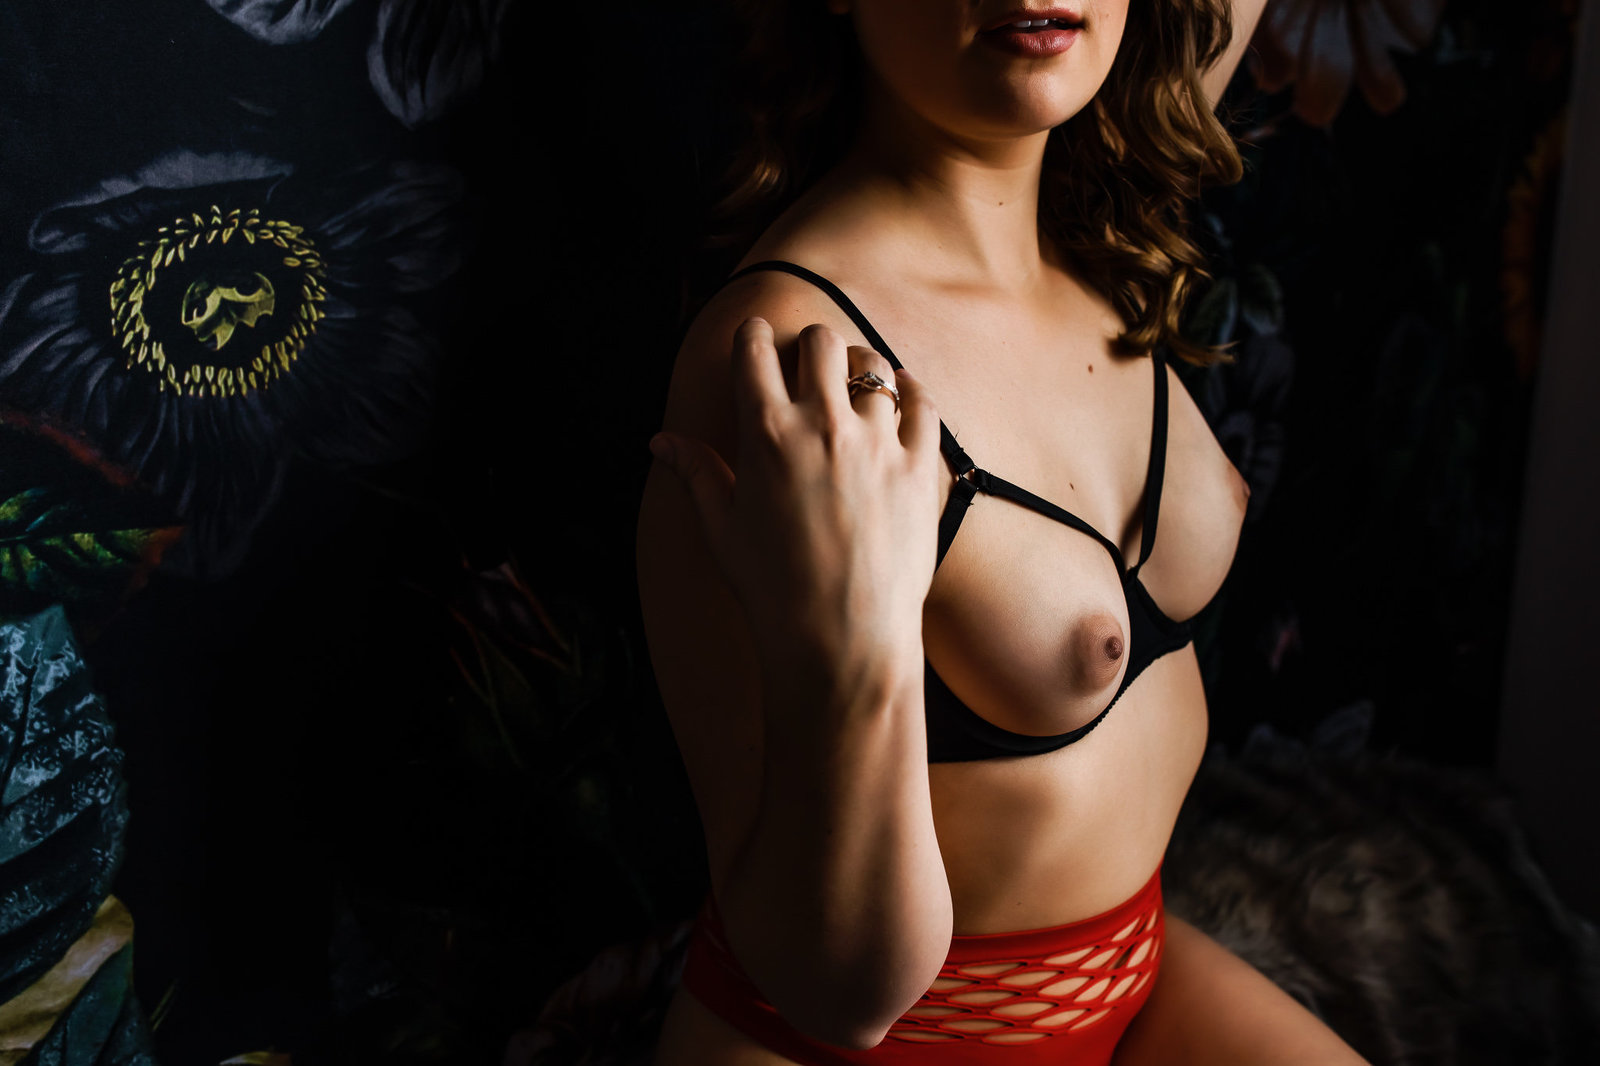 Sexy photo of a woman taken in a Saint Louis boudoir studio